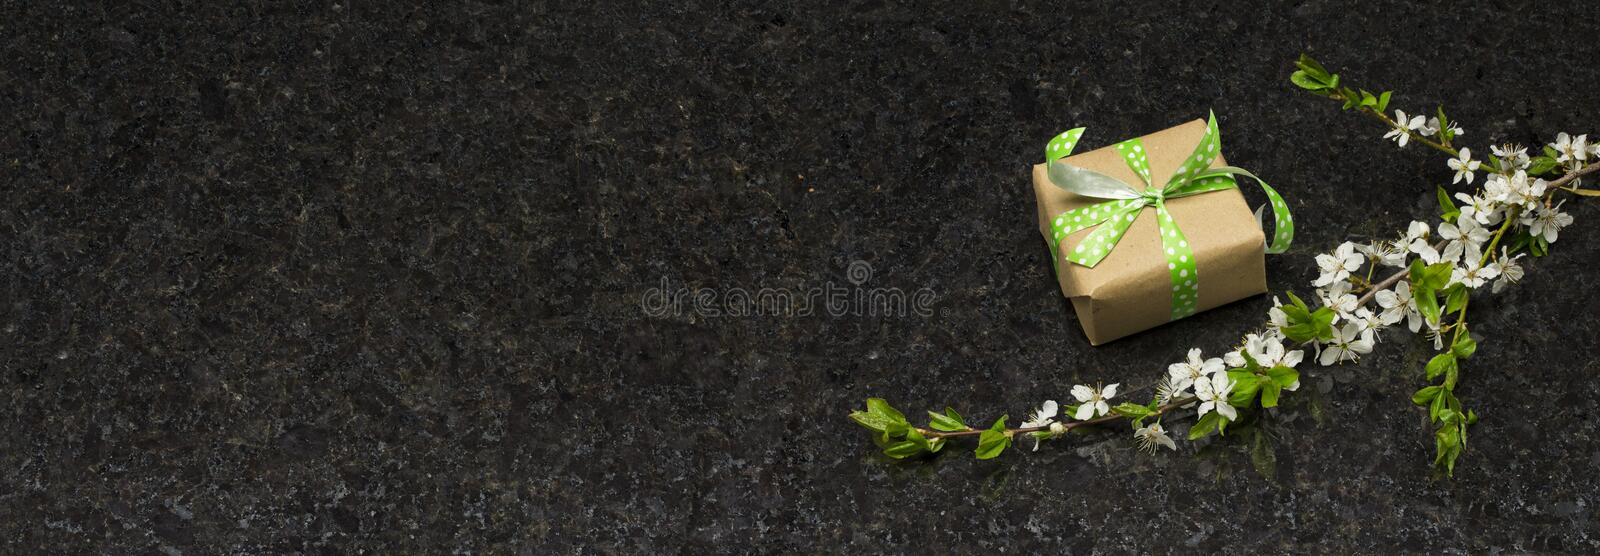 Plum blossom branch and gift box on Antique Brown granite countertop stock photos